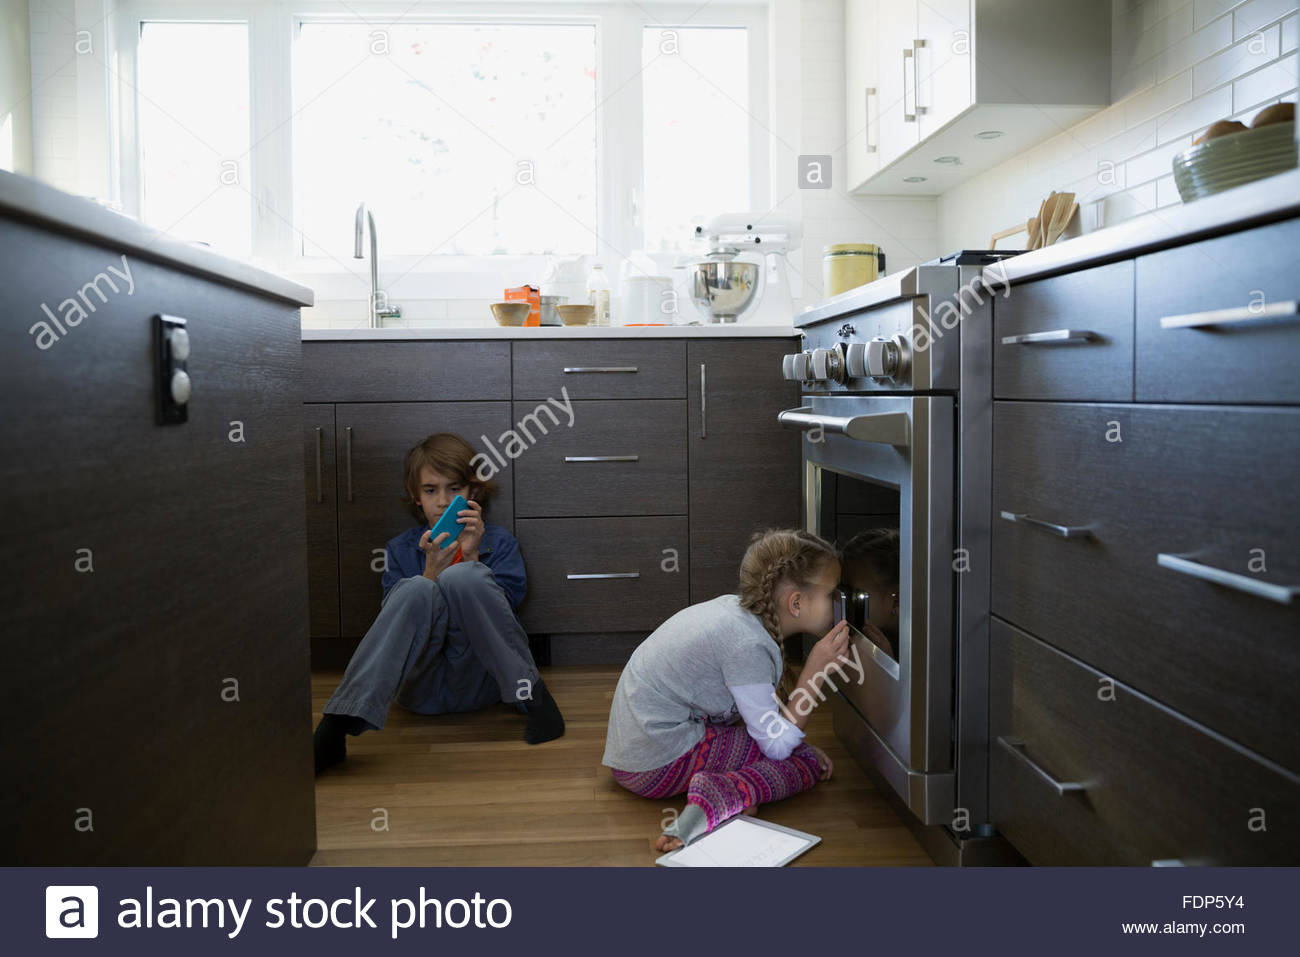 Girl peering into oven in kitchen - Stock Image